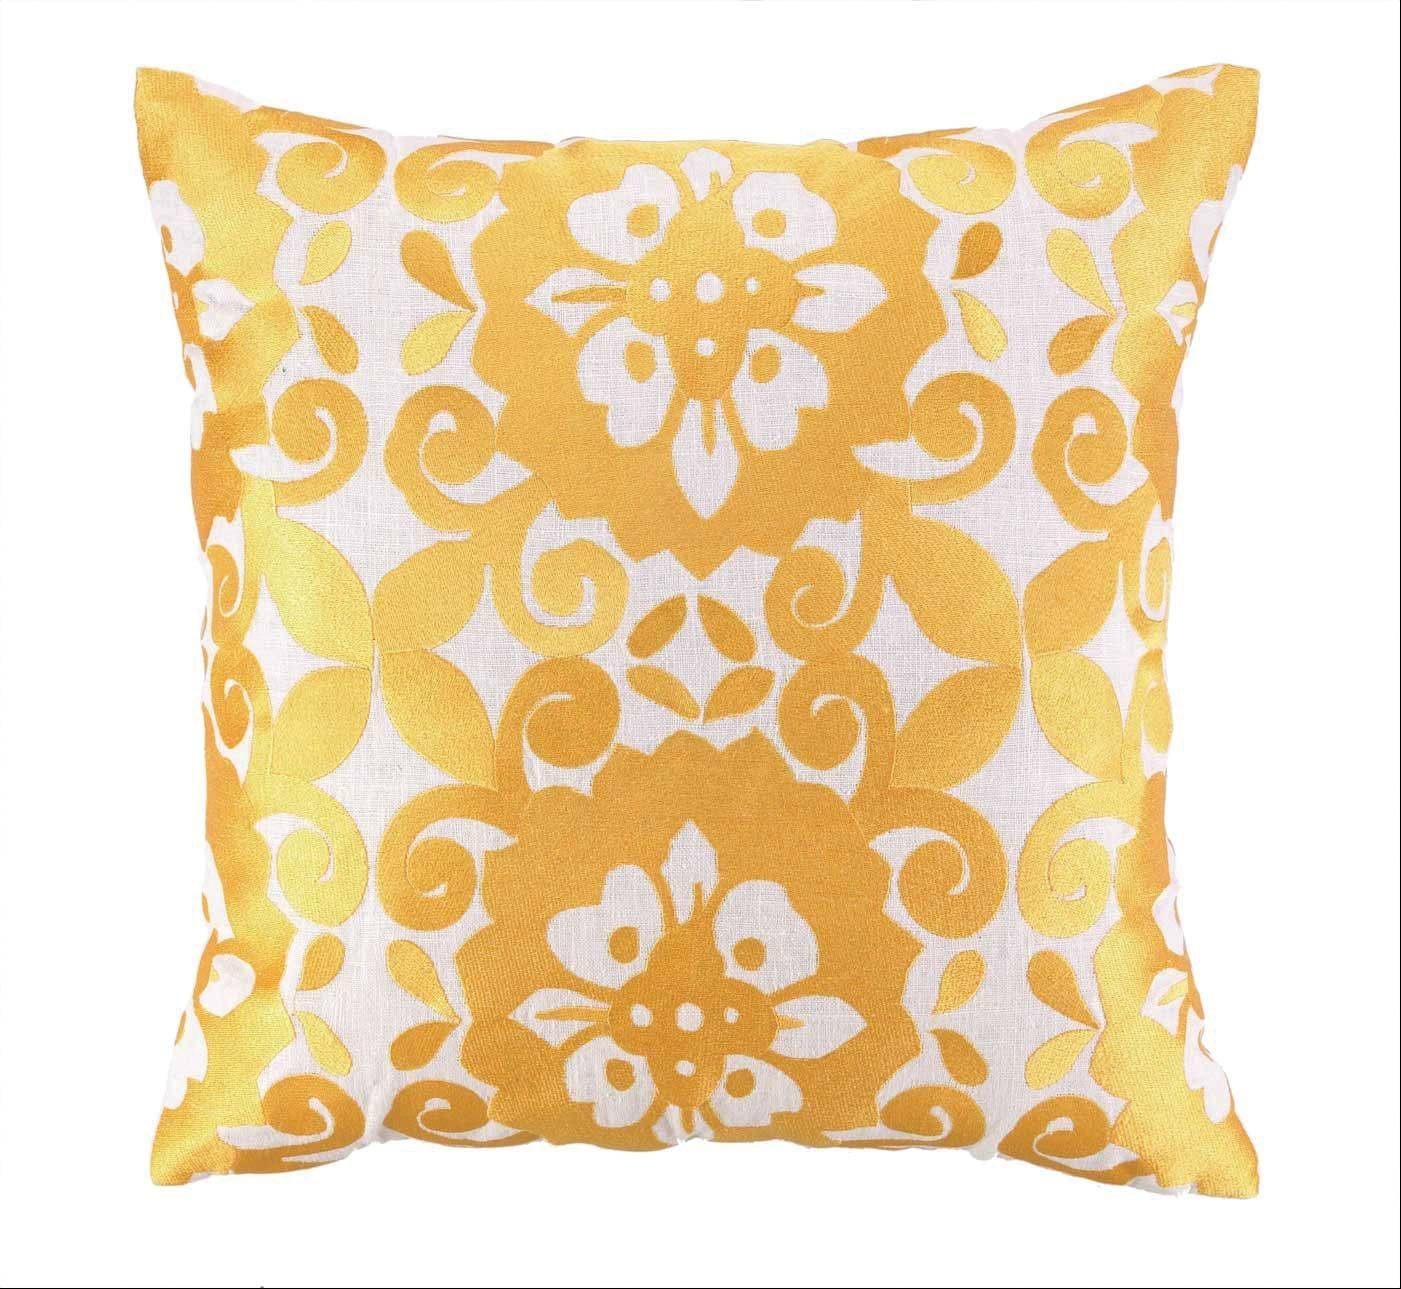 Gold futures: A metallic yellow pillow adds a pop of color and shine.